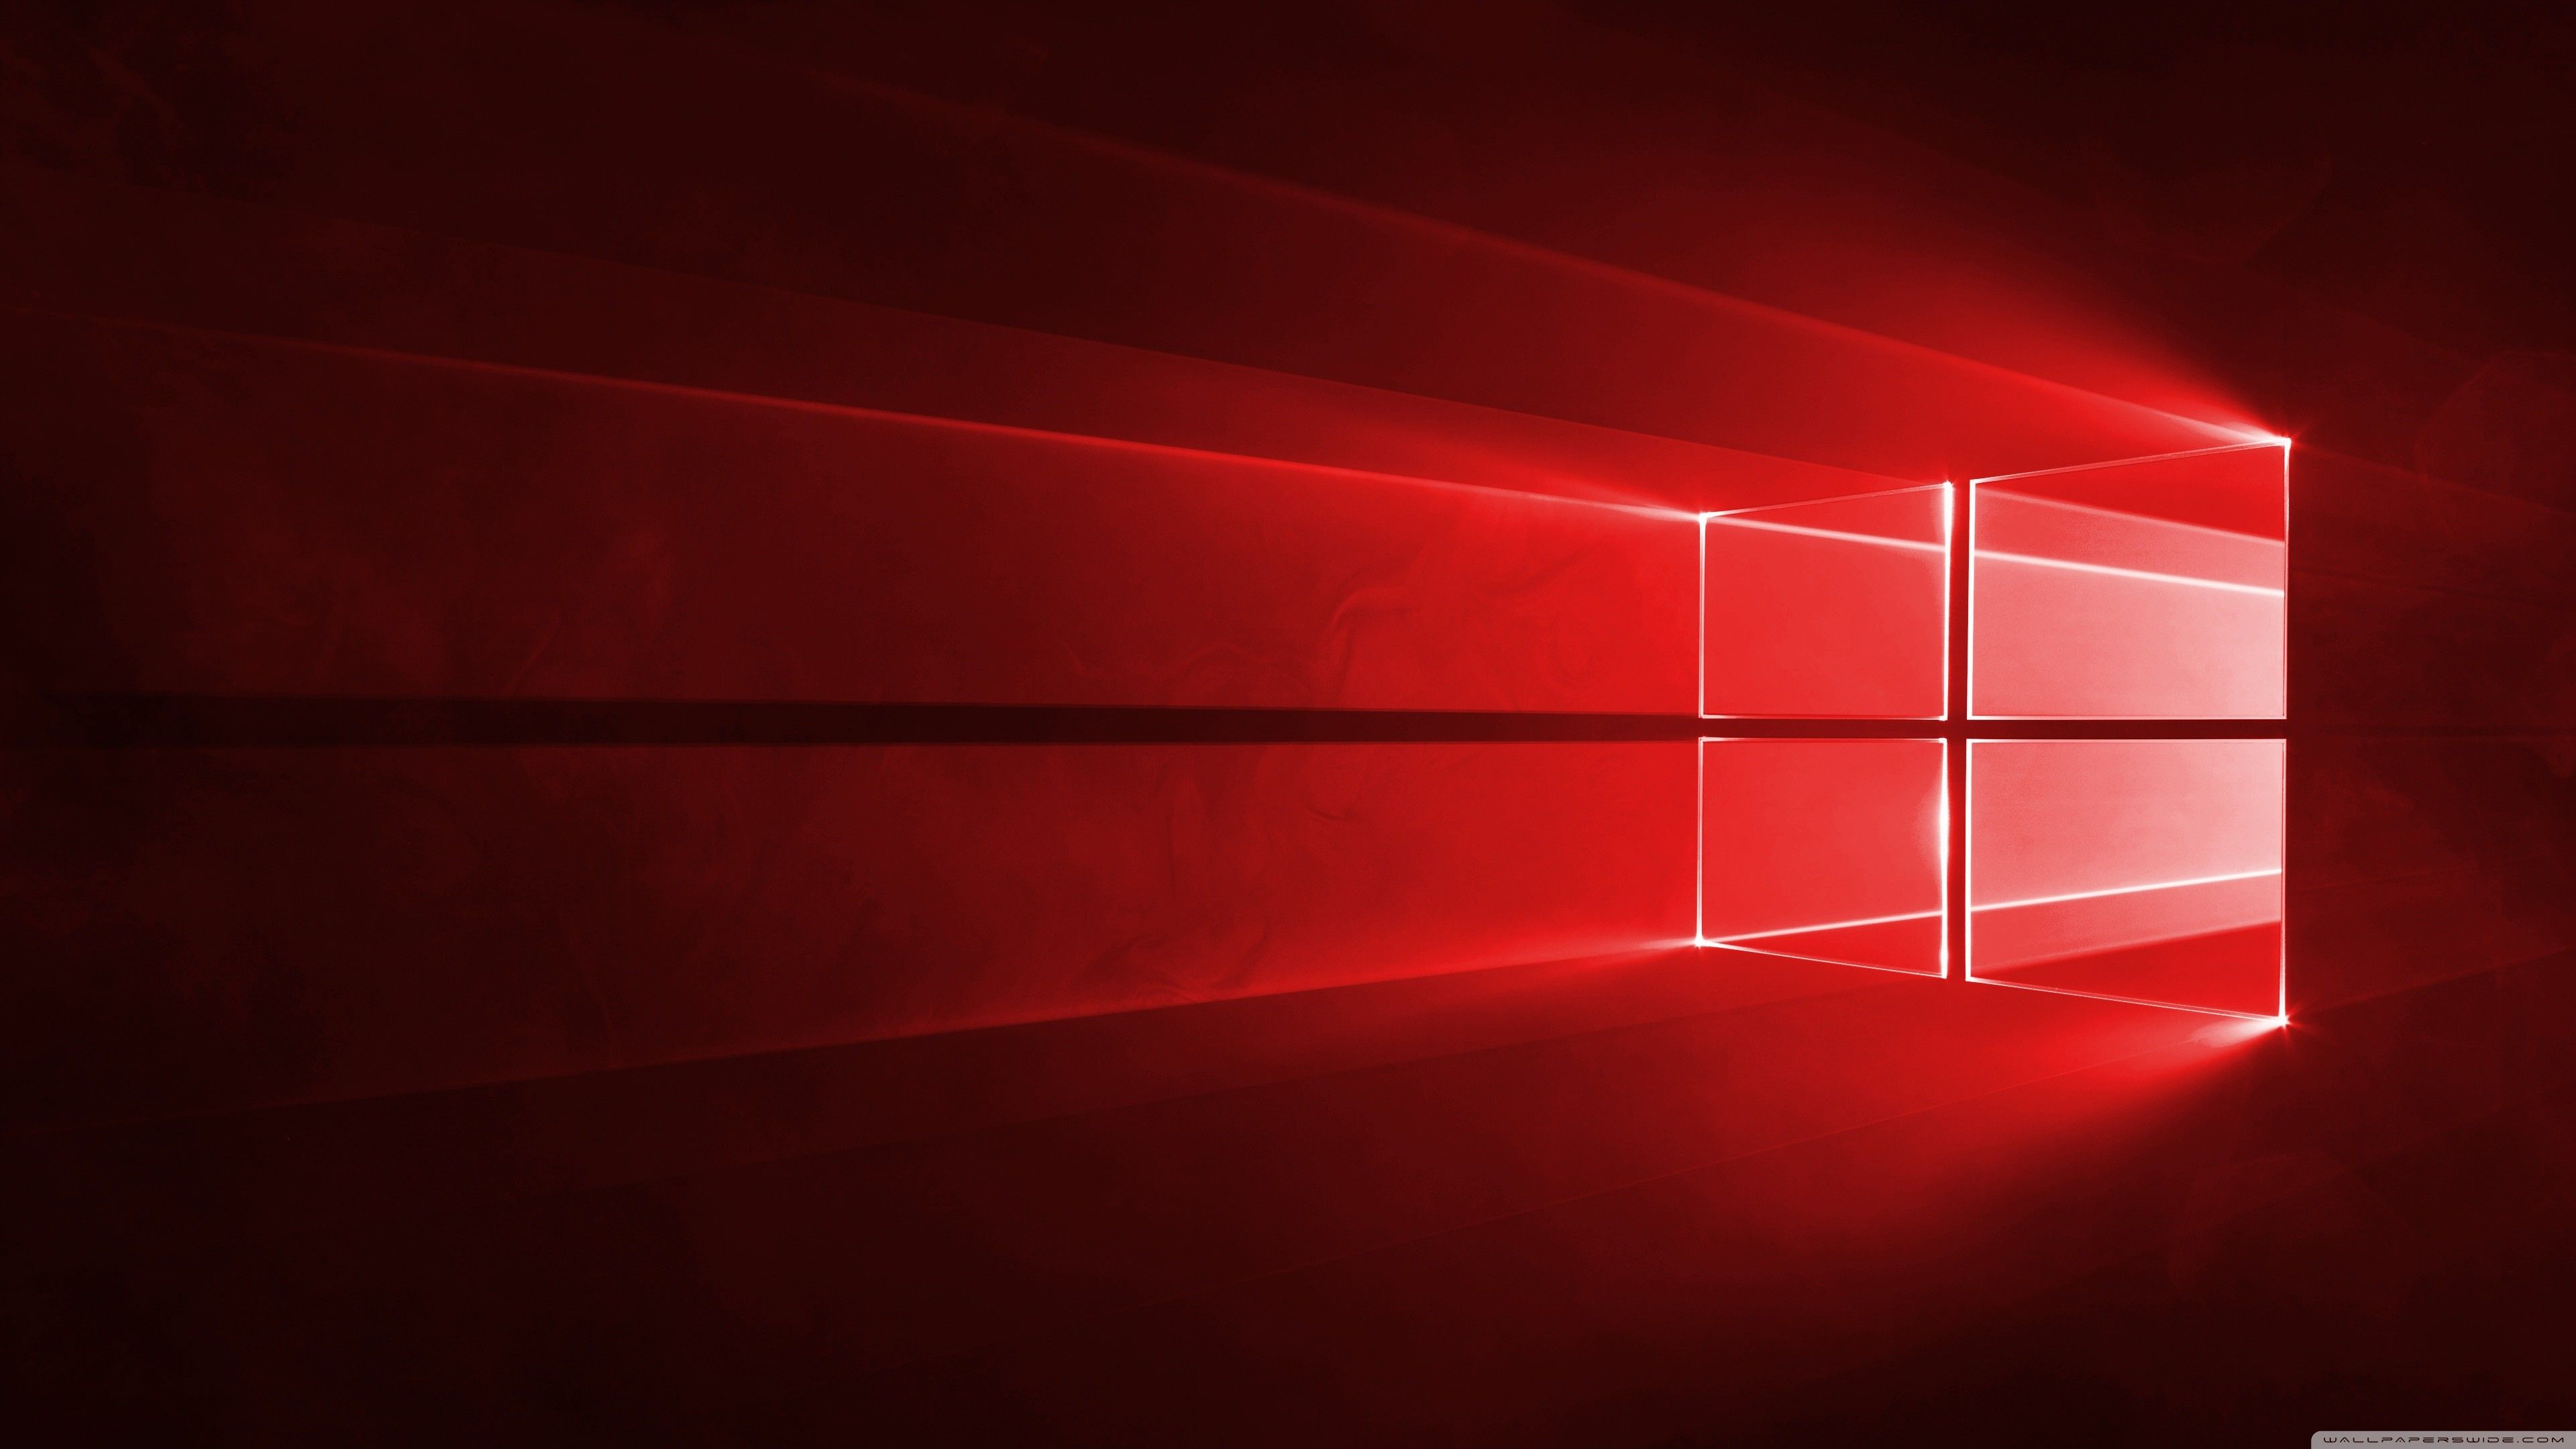 3840x2160 Windows 10 Minimal Hd 4k Wallpaper Windows Wallpaper Windows 10 Logo Wallpaper Windows 10